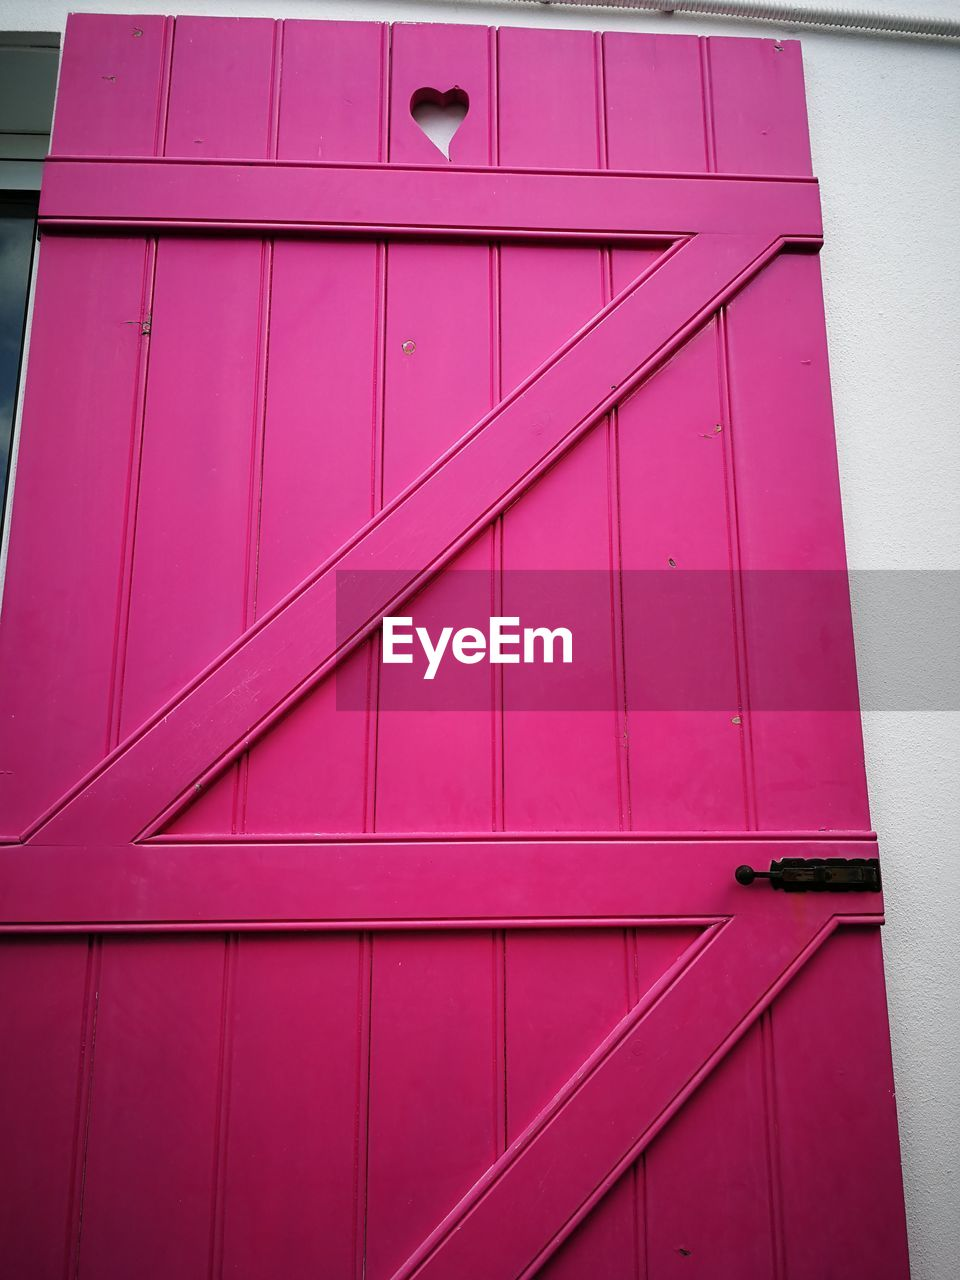 architecture, built structure, building exterior, pink color, no people, full frame, day, building, door, entrance, outdoors, closed, safety, security, pattern, protection, backgrounds, close-up, wall, low angle view